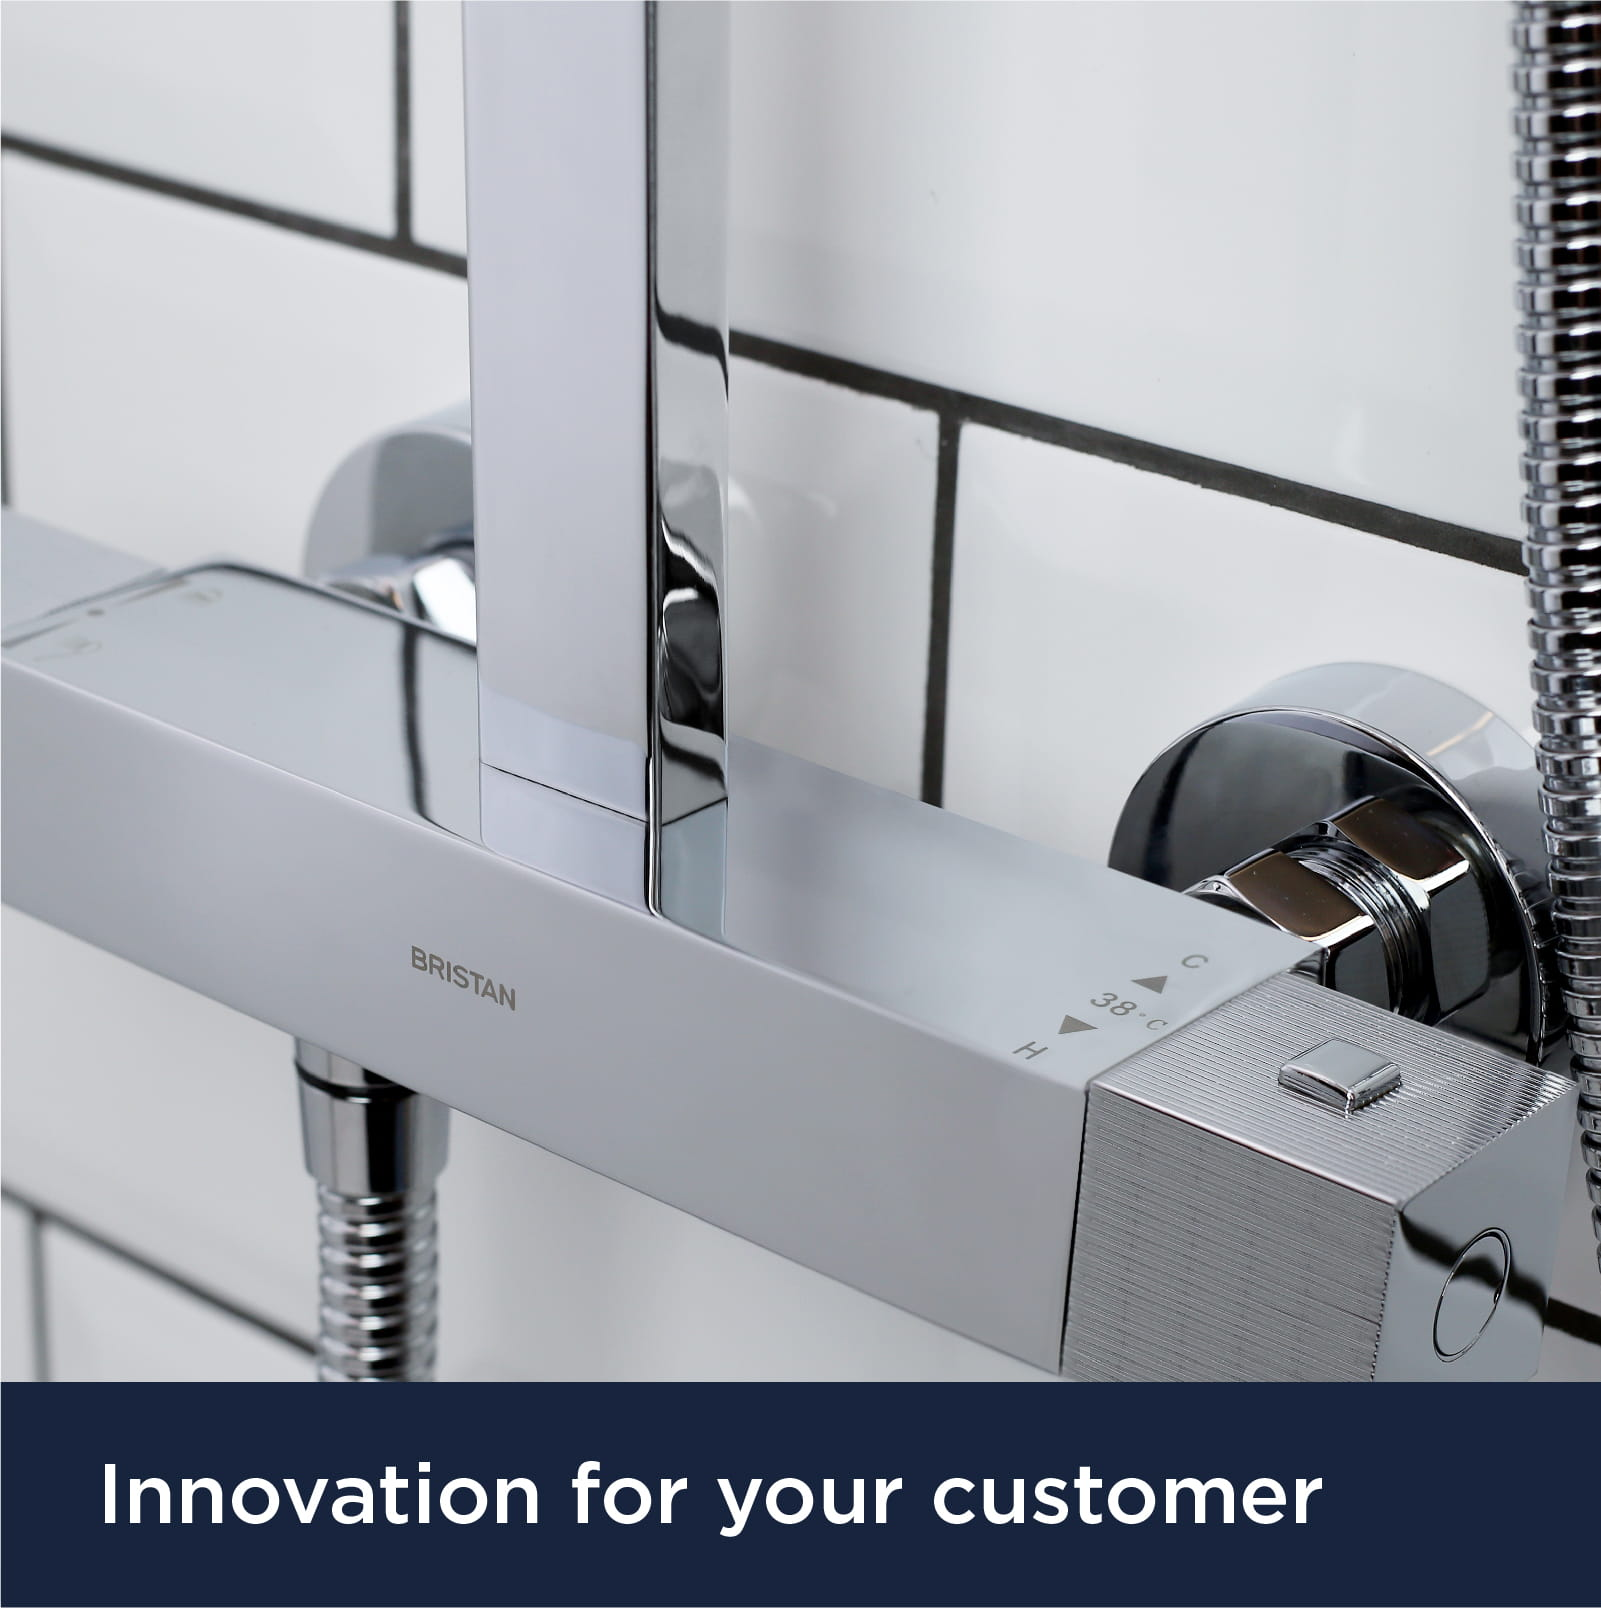 The latest innovations for your customers